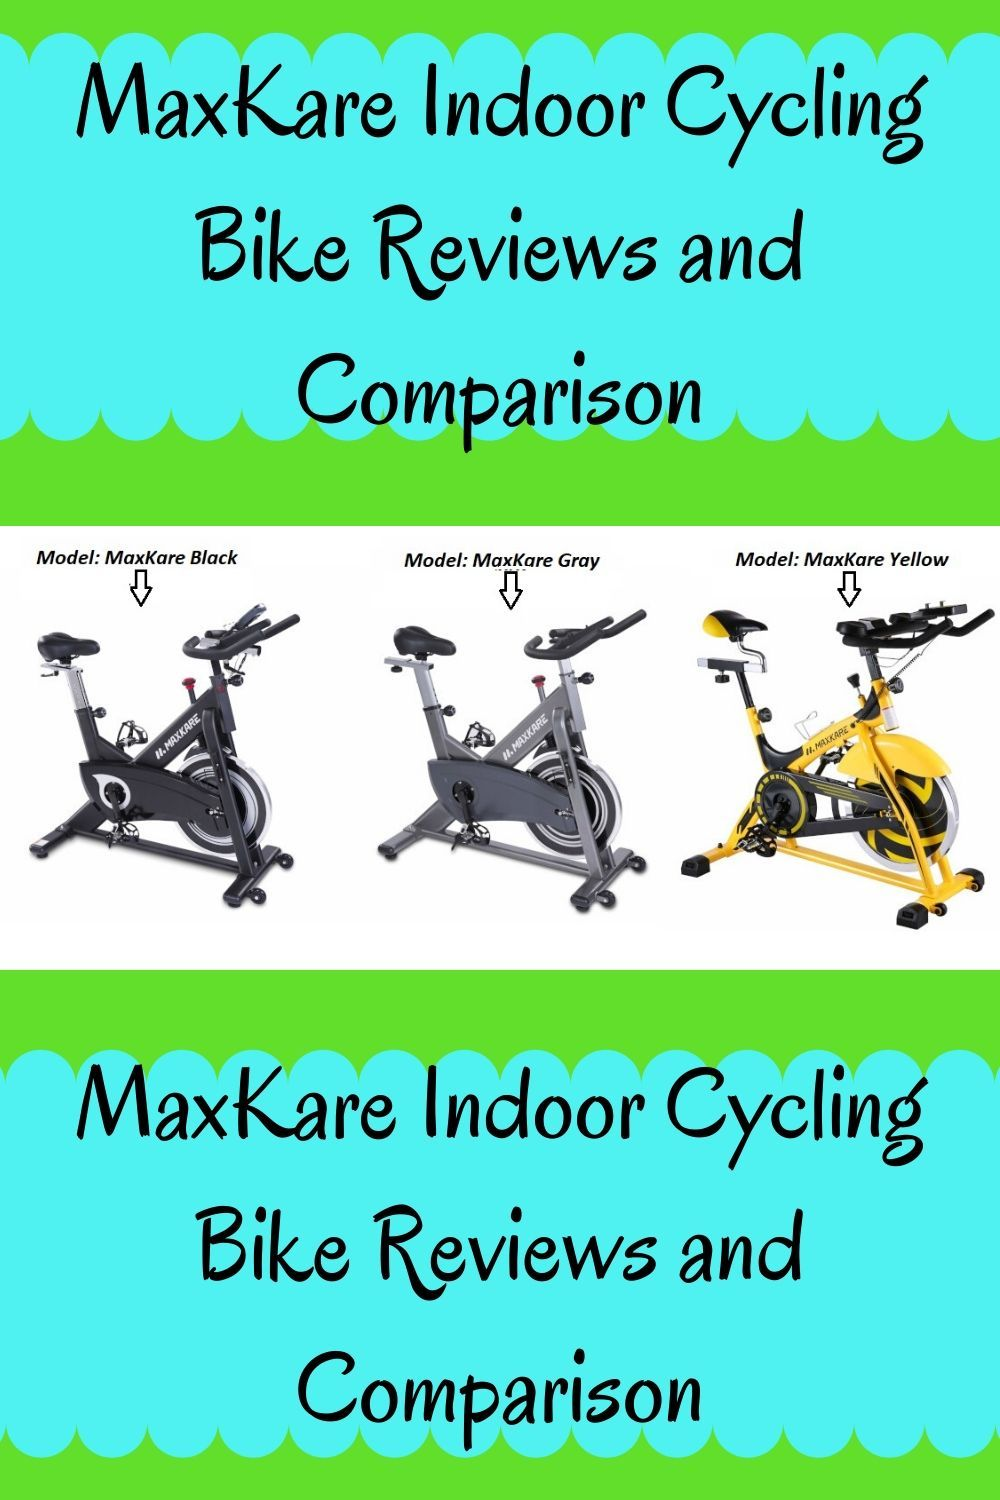 Maxkare Indoor Cycling Bike Reviews And Comparison In 2020